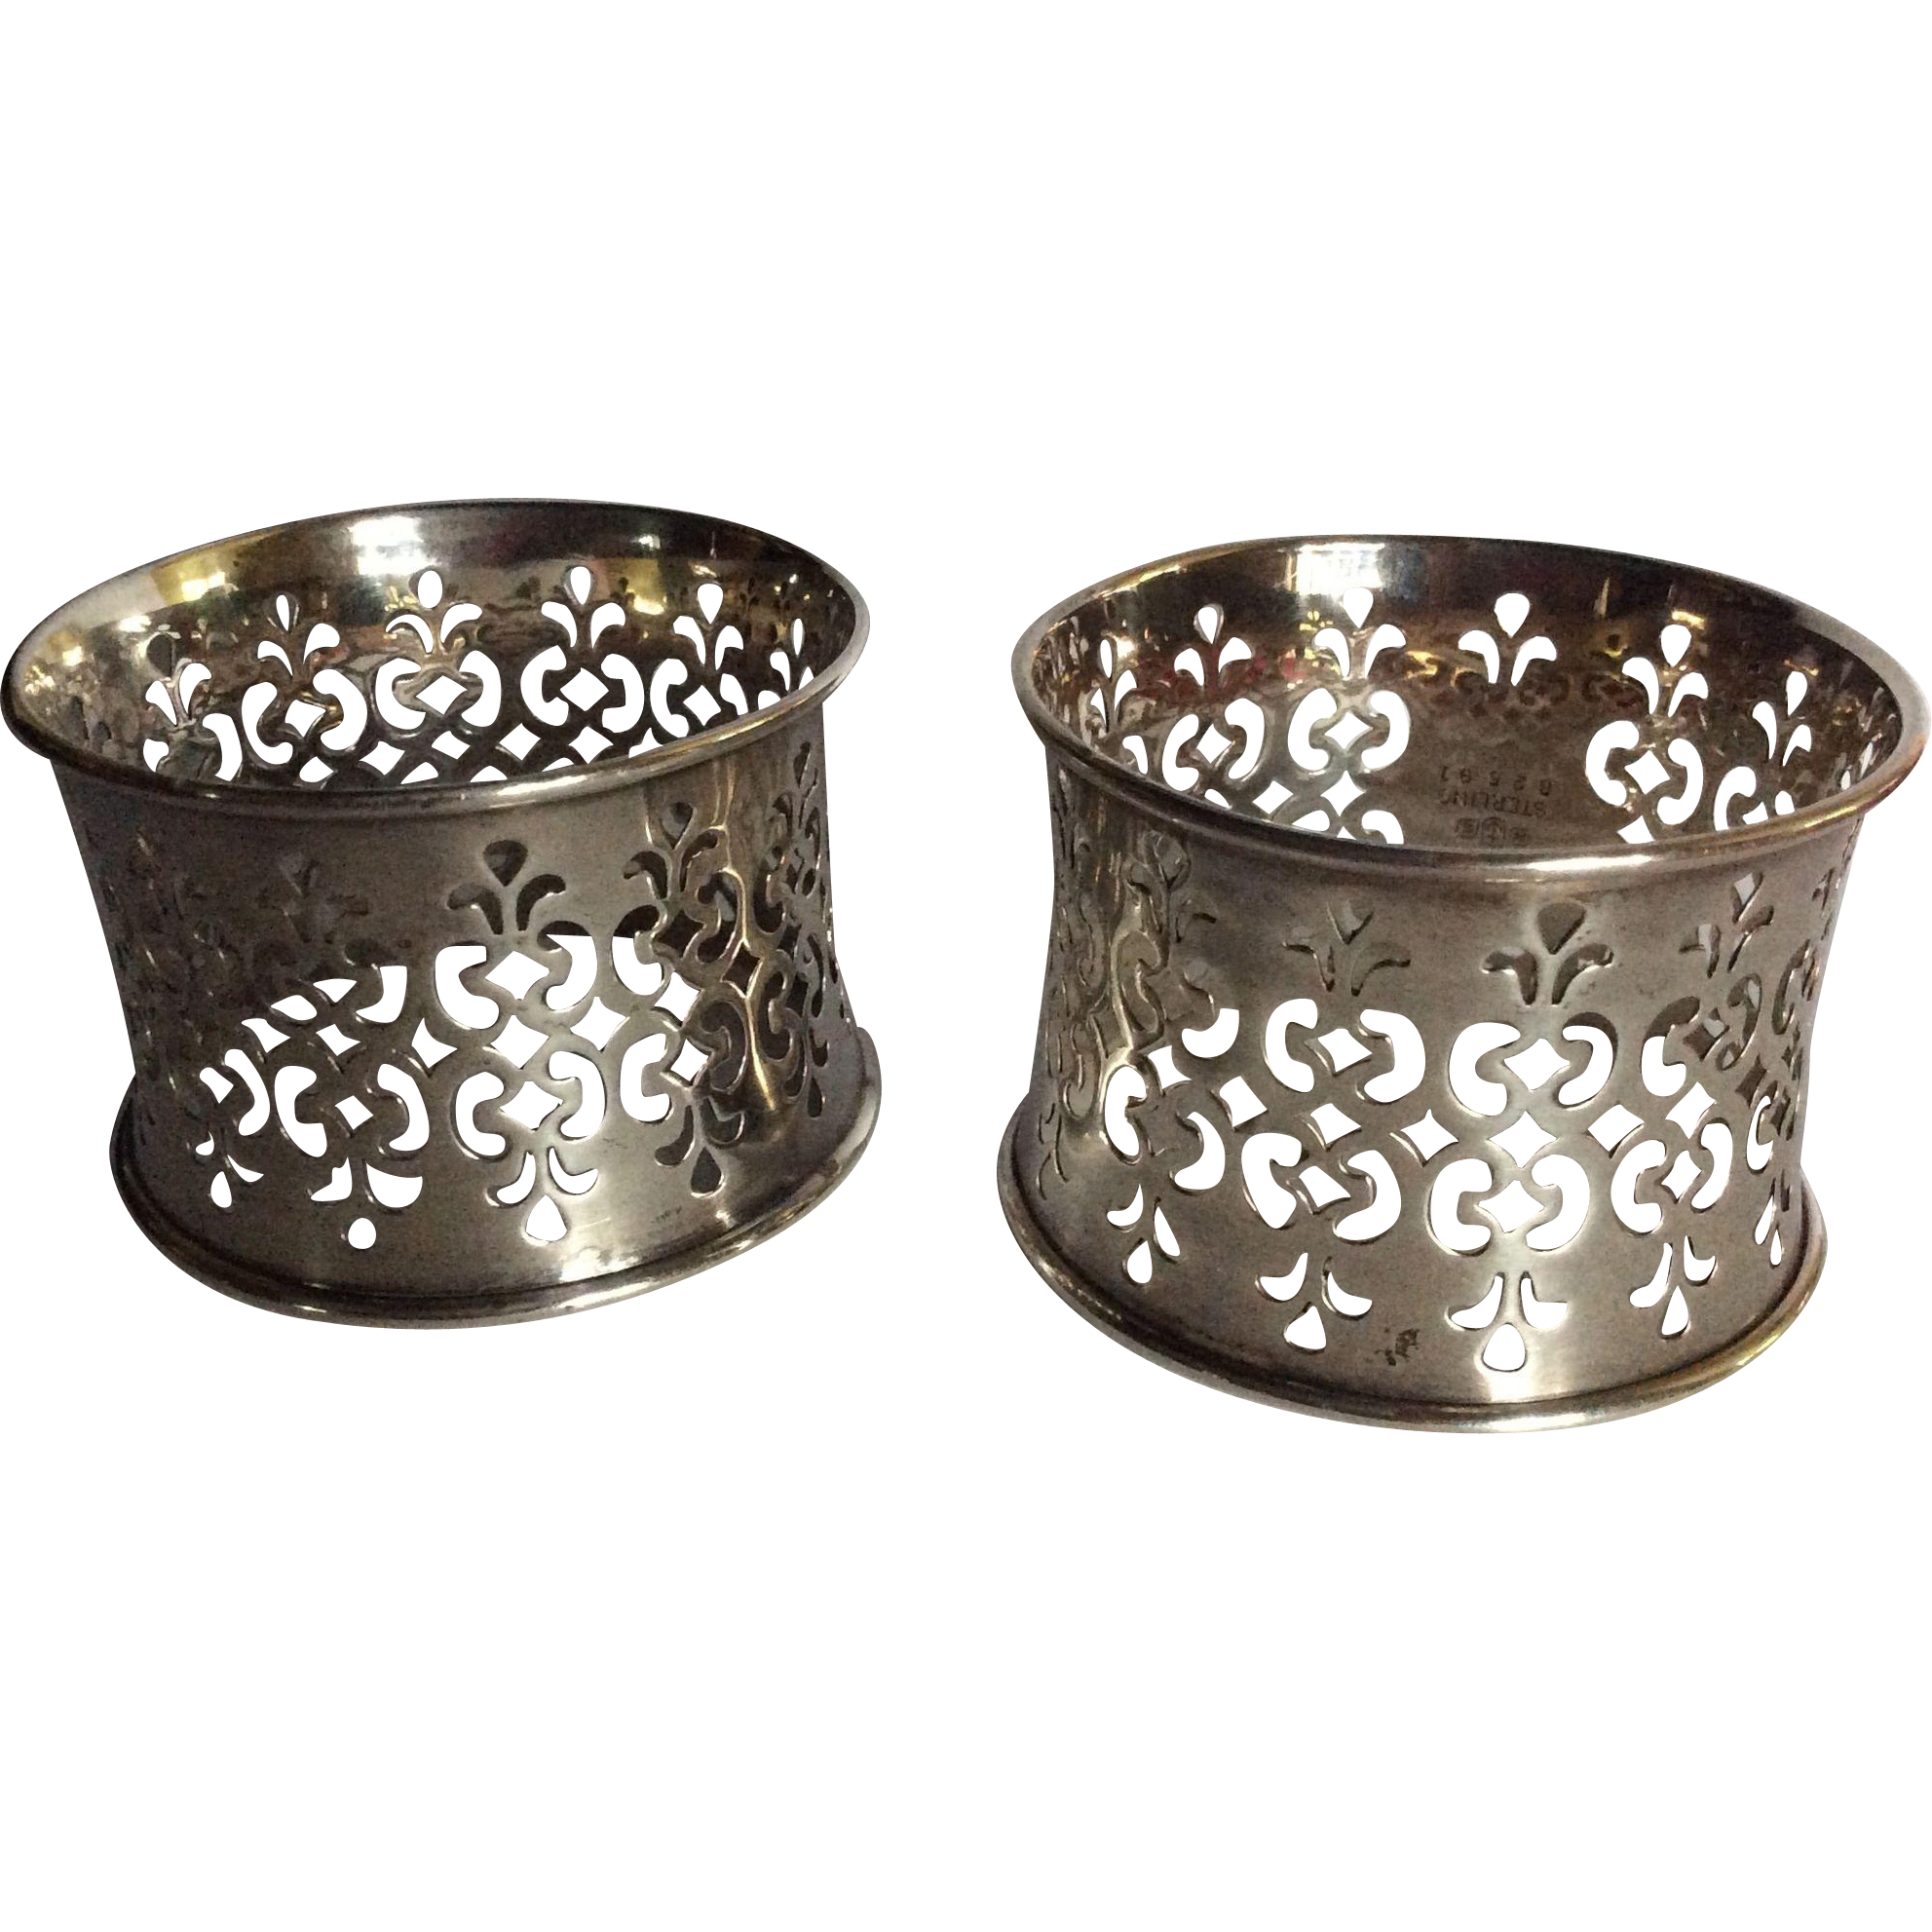 Pair ornate Pierced Sterling silver Napkin Rings Serviette Holders by Gorham